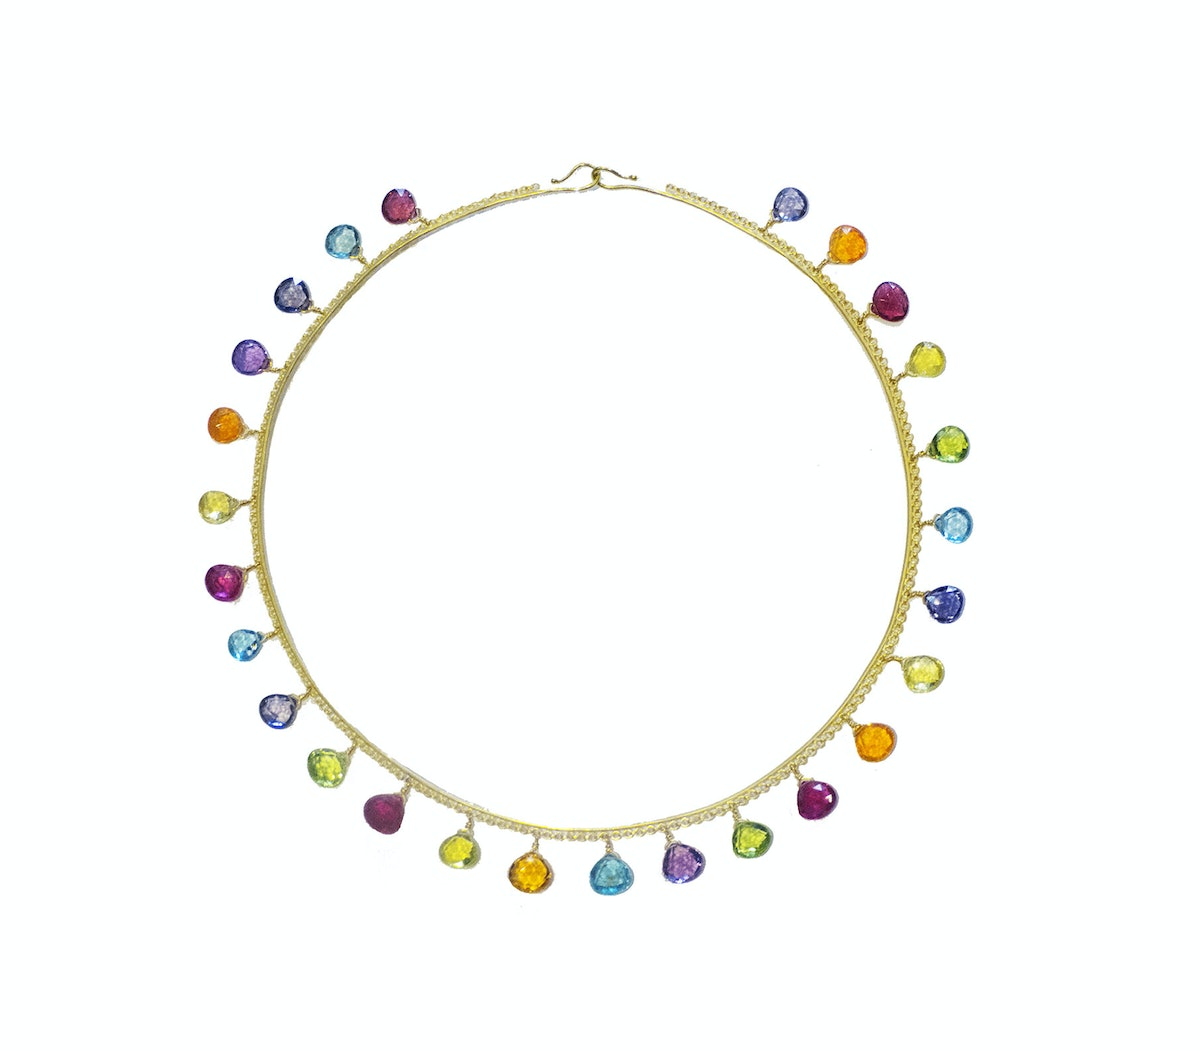 Marie-Hélène de Taillac 22k yellow gold and multicolored stone necklace